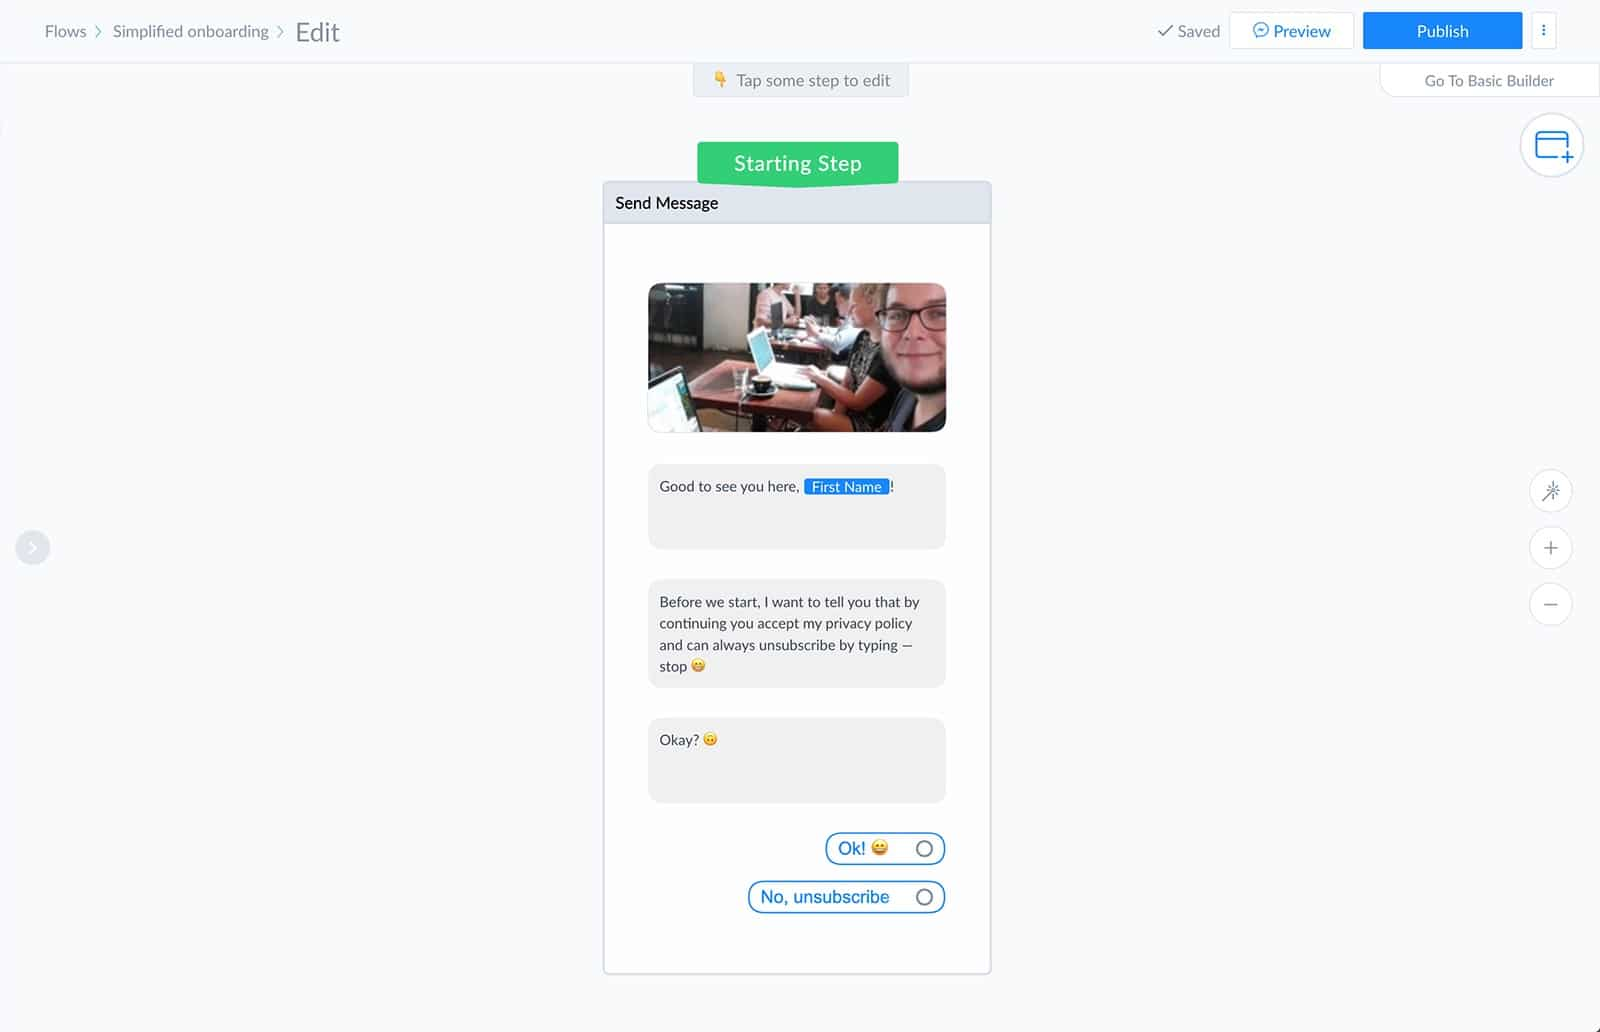 Add quick replies to the send message block